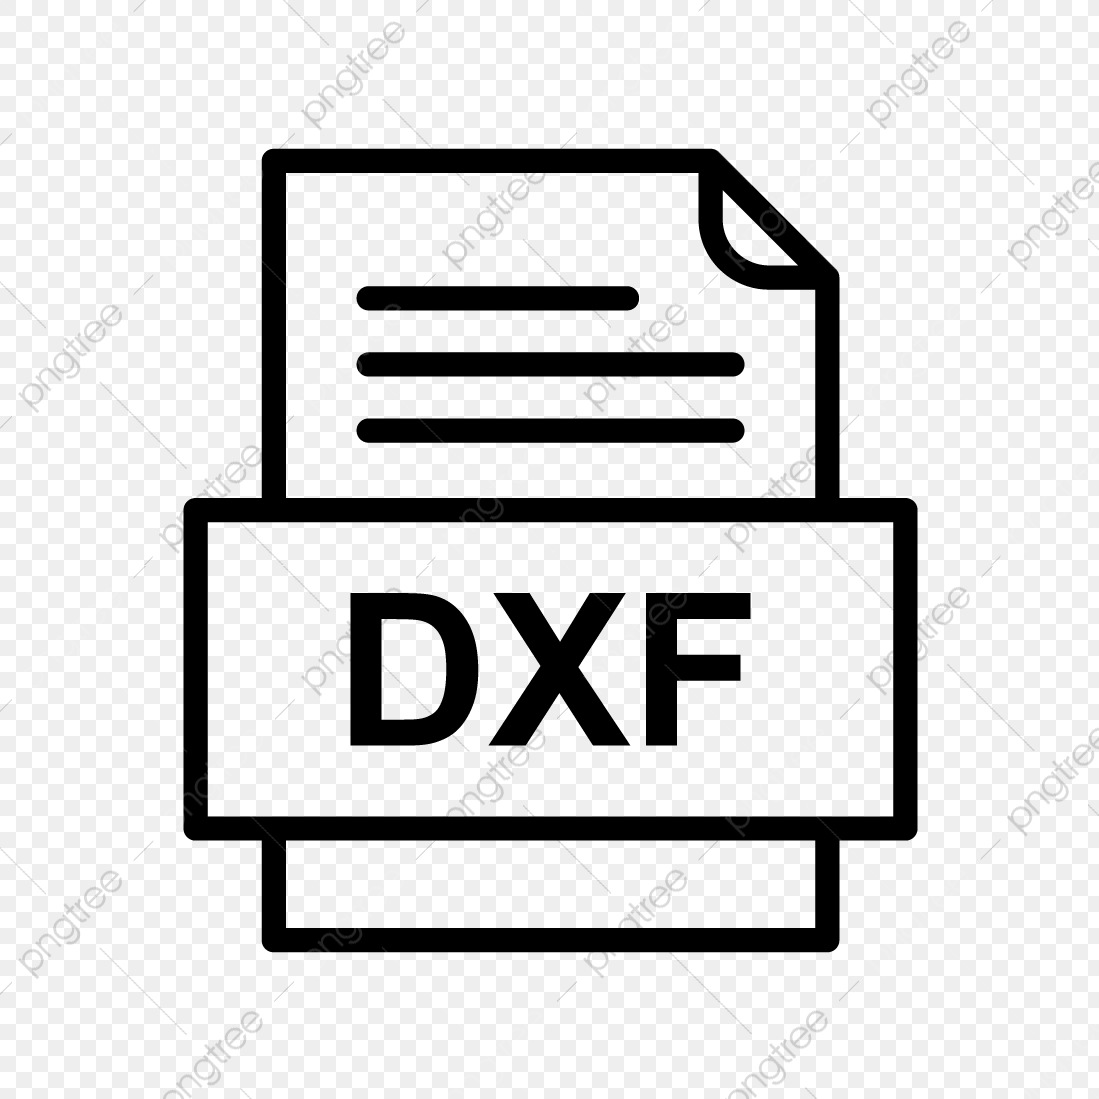 DXF File Document Icon, Dxf, Document, File PNG and Vector with